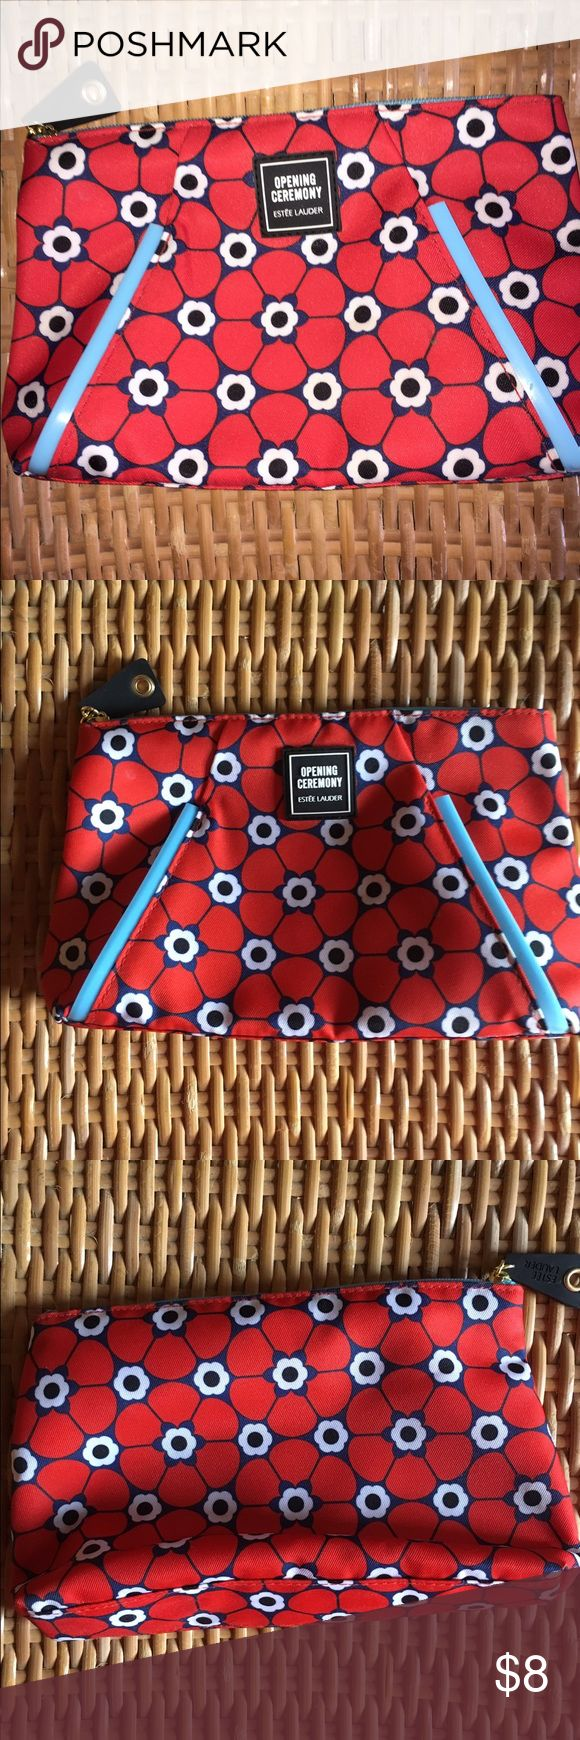 Estée Lauder A never used Estée Lauder cosmetics bag with a cute and colorful design! Make an offer, from a smoke free home 💞 Estee Lauder Bags Cosmetic Bags & Cases